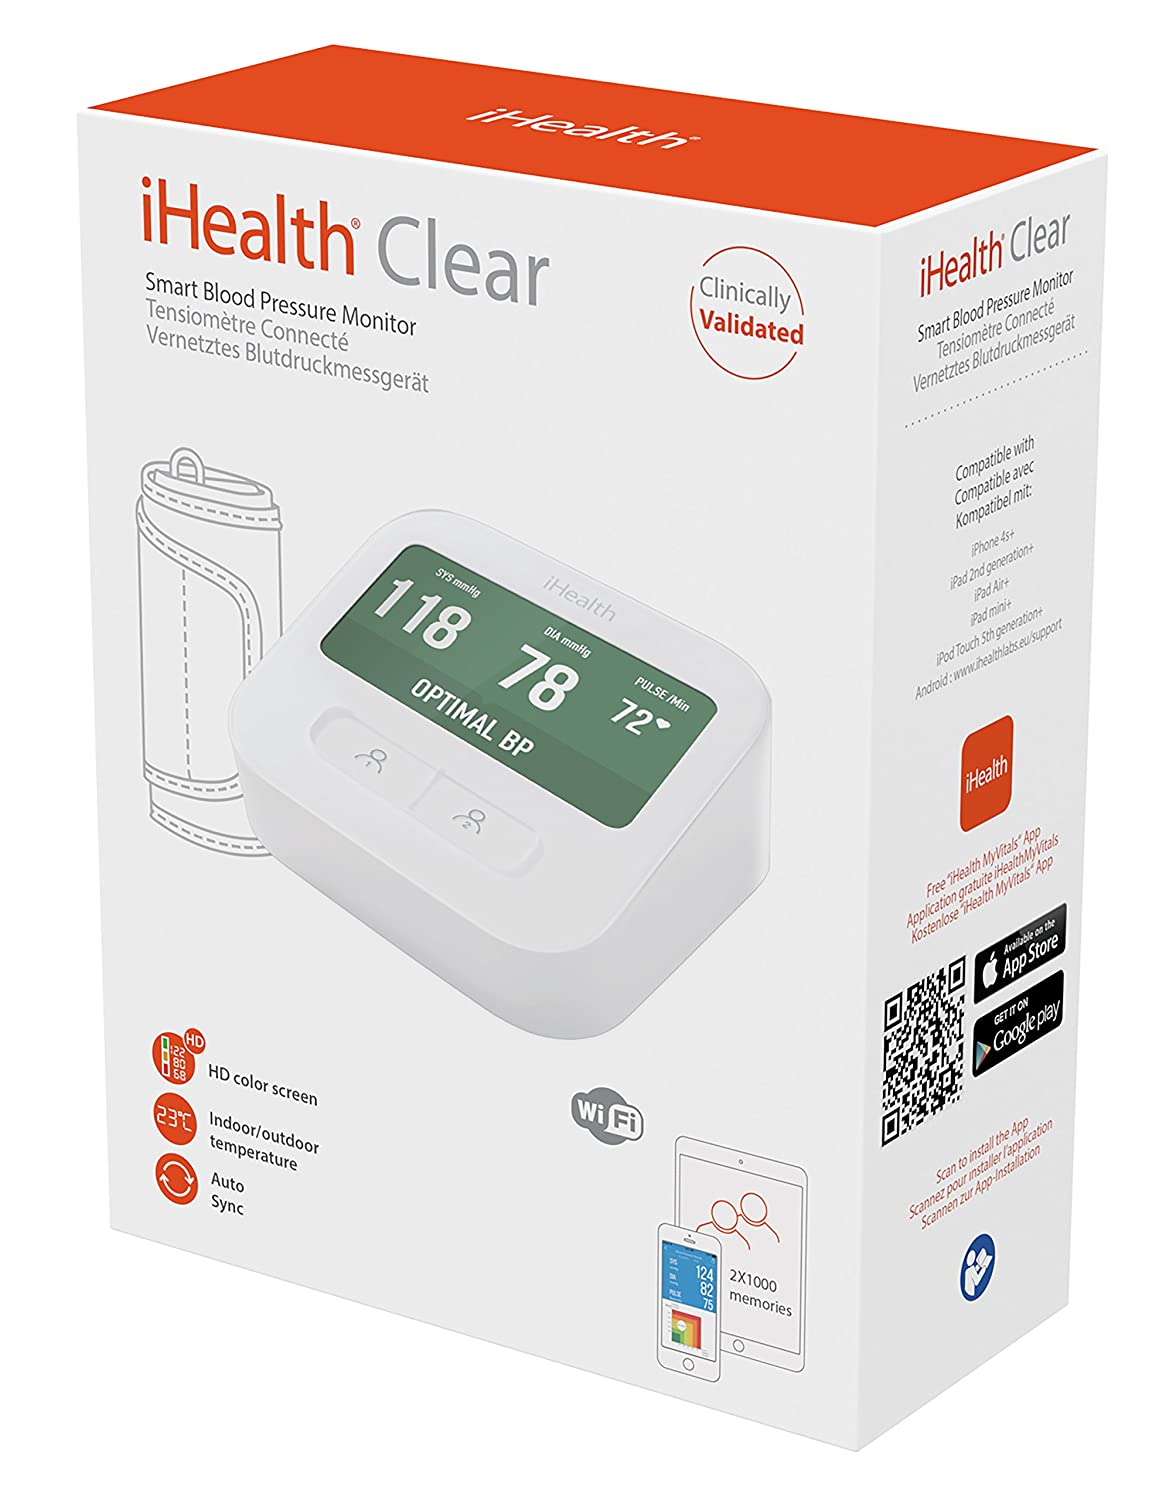 """Amazon.com: iHealth Clear Wireless Upper Arm Blood Pressure Monitor with Standard Cuff (8.7-14.2 Inch Circumference),4.3"""" LCD Color Display & 2000 Memory ..."""